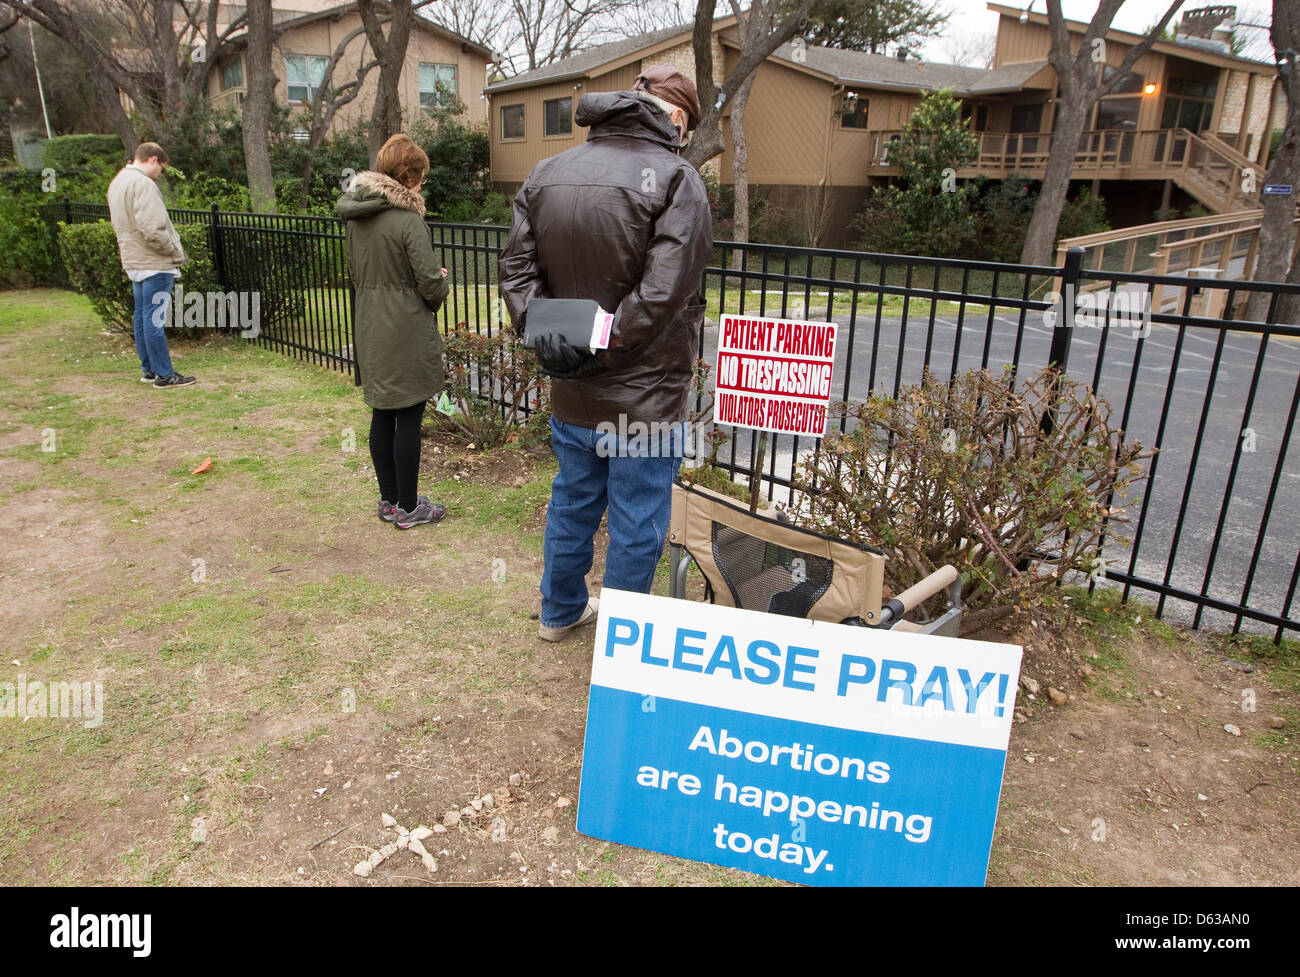 Several volunteers pray outside a South Austin clinic where abortions are performed as part of the pro-life campaign - Stock Image